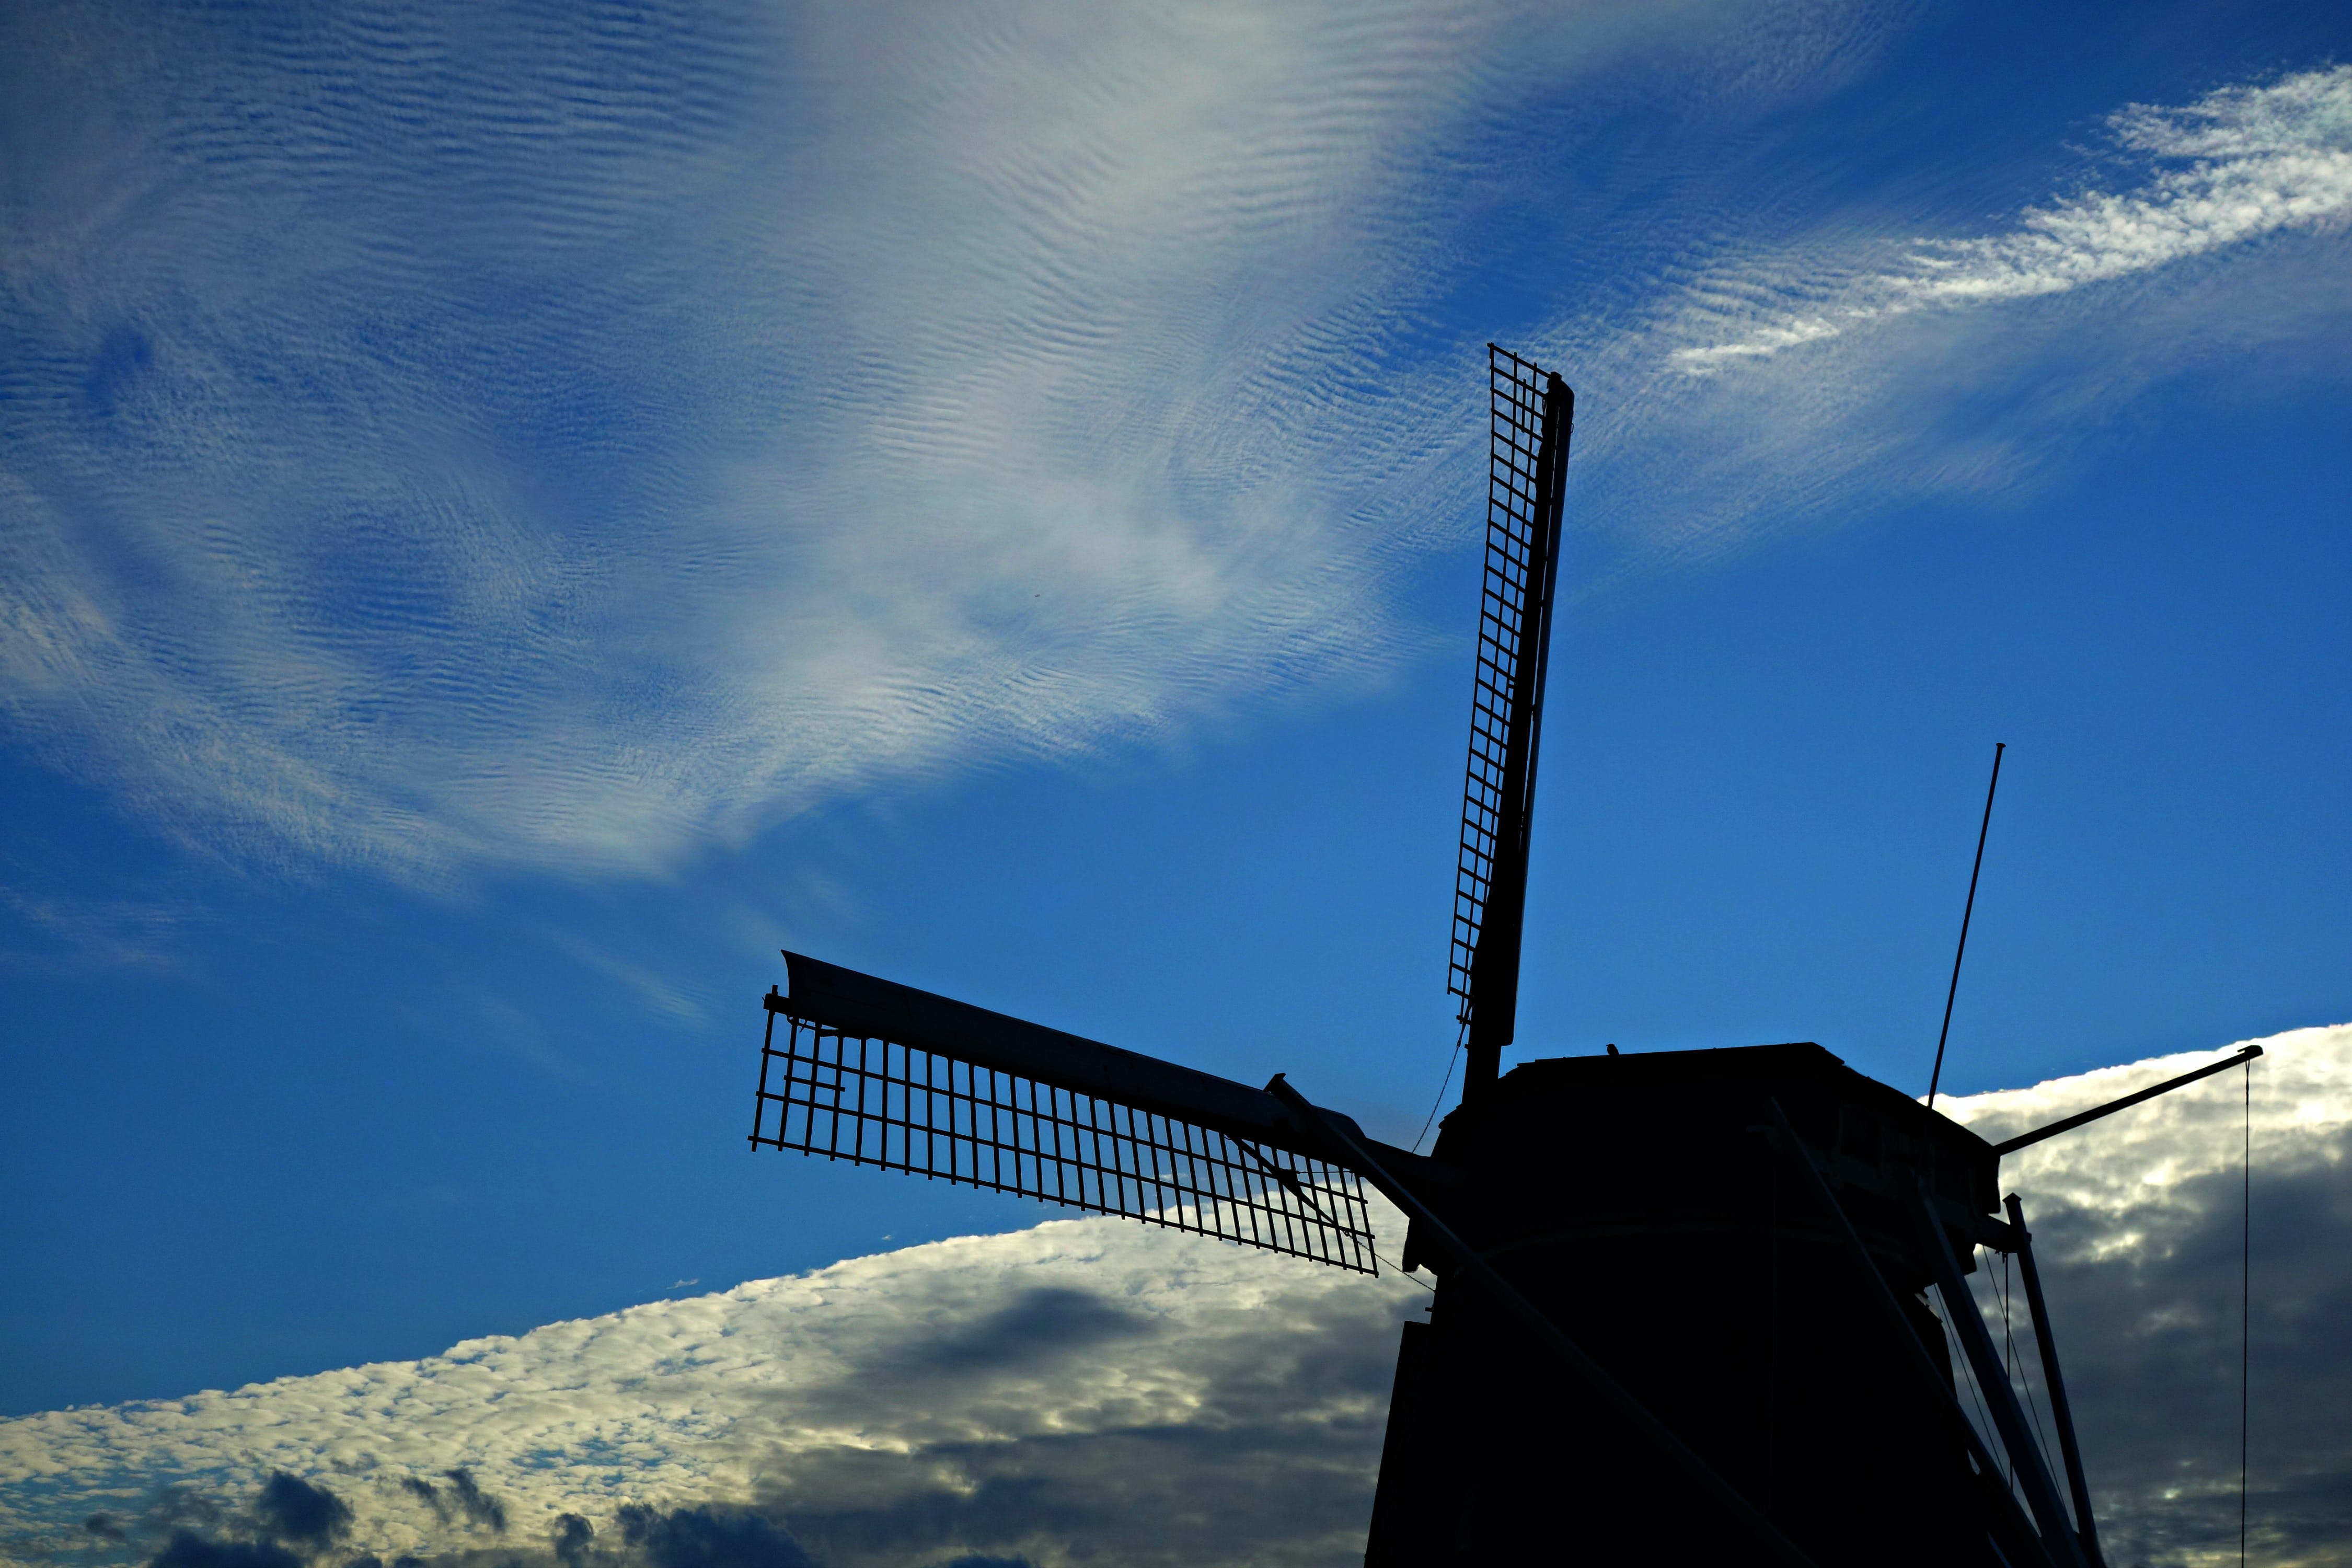 of Holland, mill, sail, silhouette